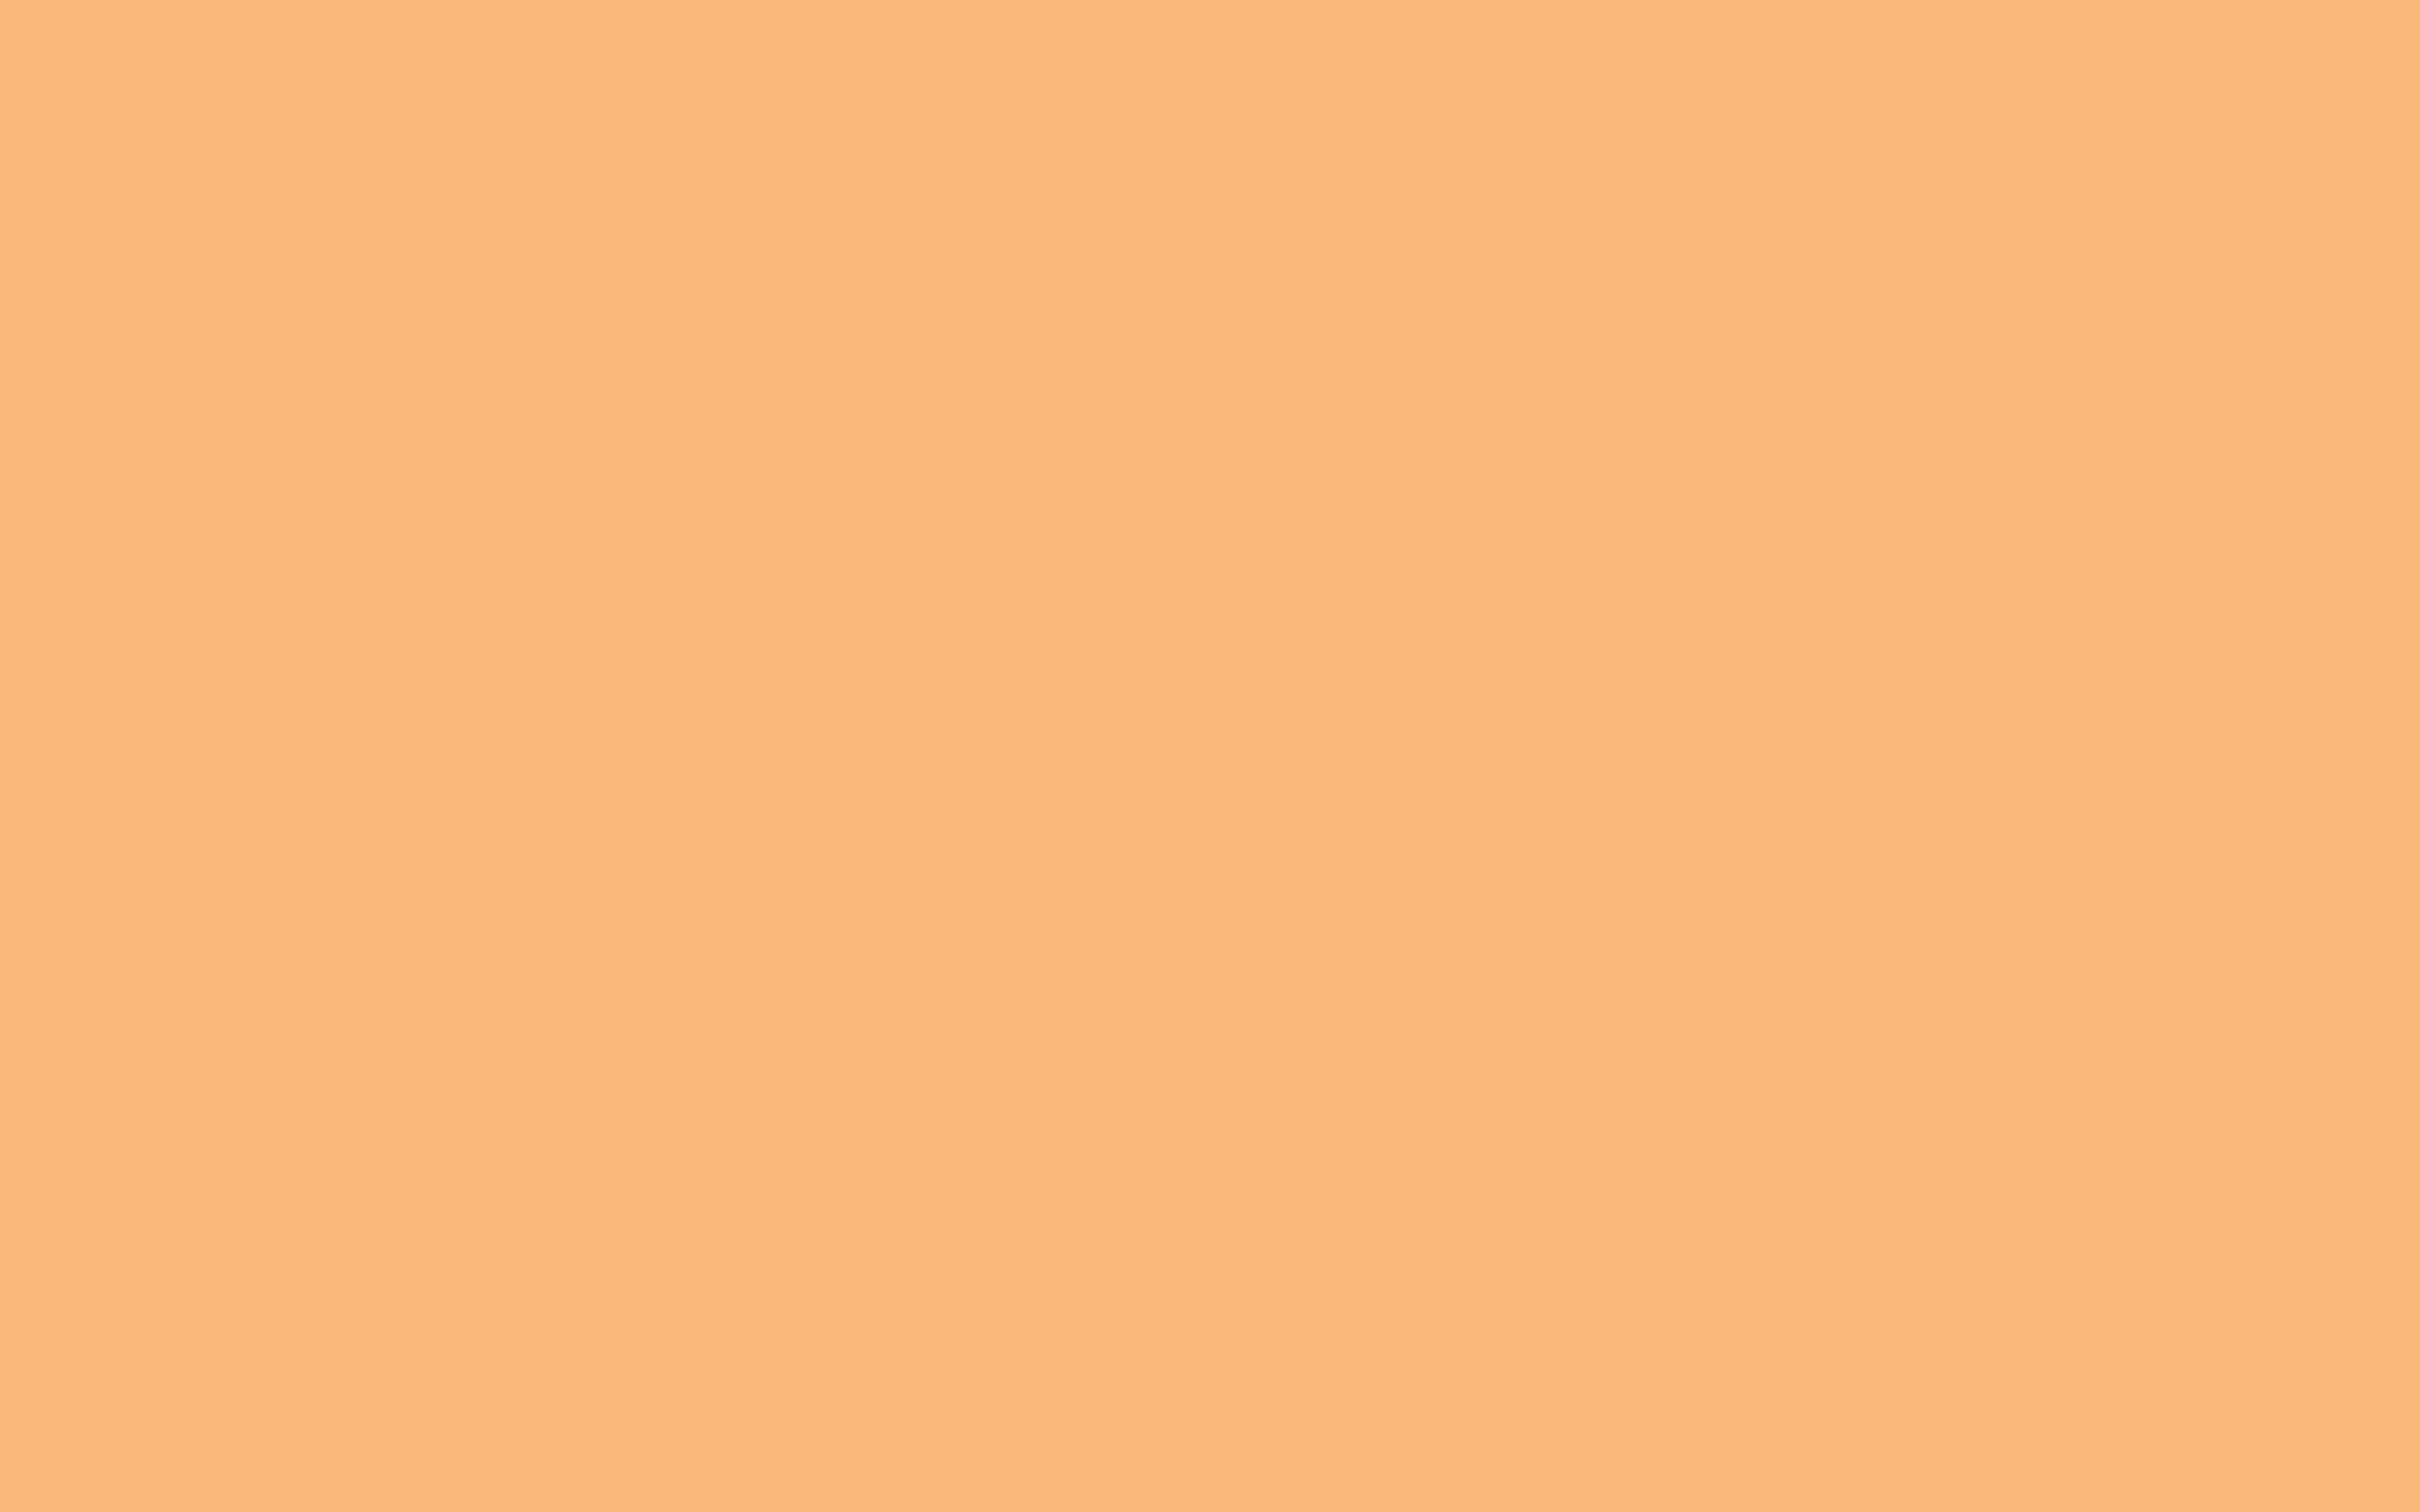 2560x1600 Mellow Apricot Solid Color Background